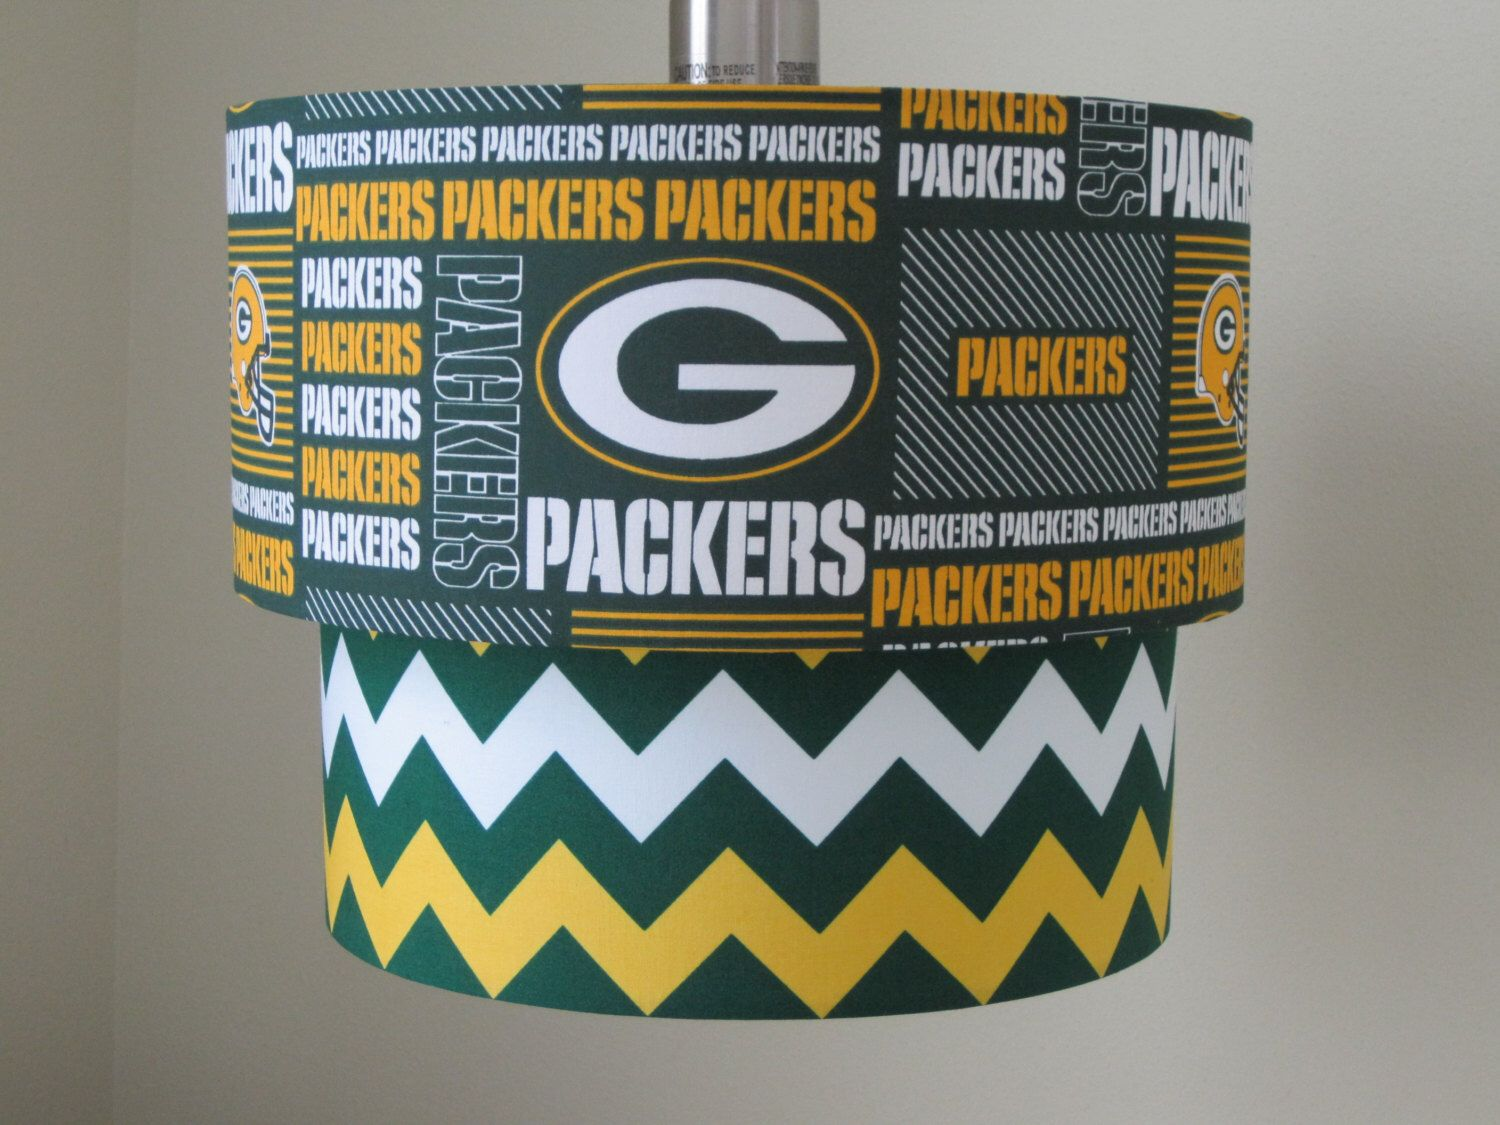 Lamp shade green bay packers drum lampshade 2 tier by lamp shade green bay packers drum lampshade 2 tier by sweetdreamshades on etsy https mozeypictures Image collections